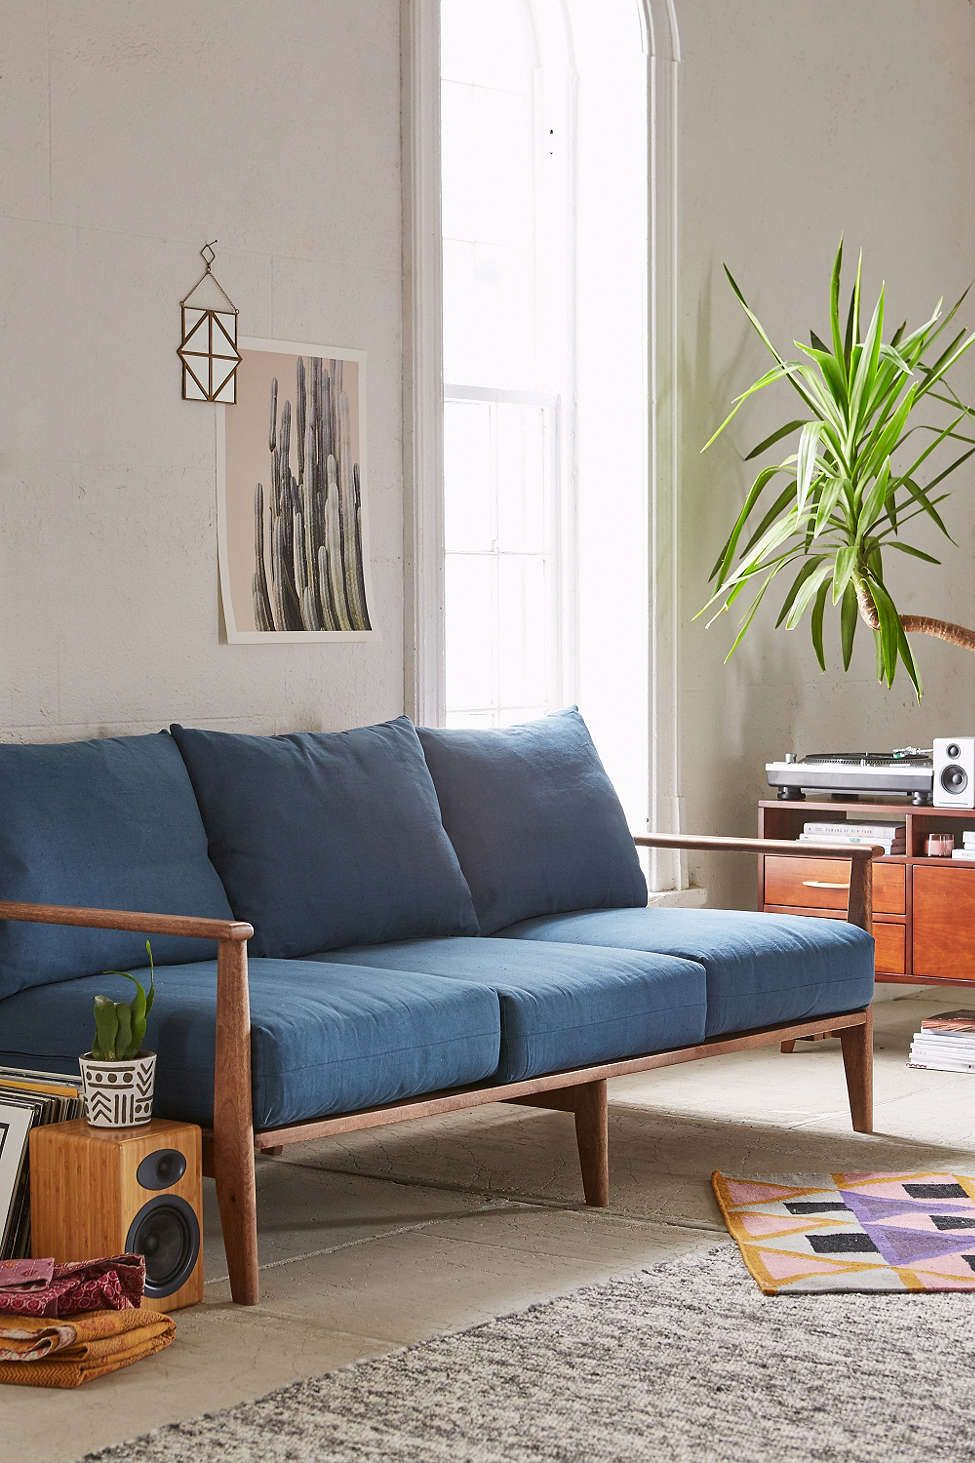 sleeper anywhere urban couch qlt hei shop sofa constrain fit outfitters xlarge d view slide